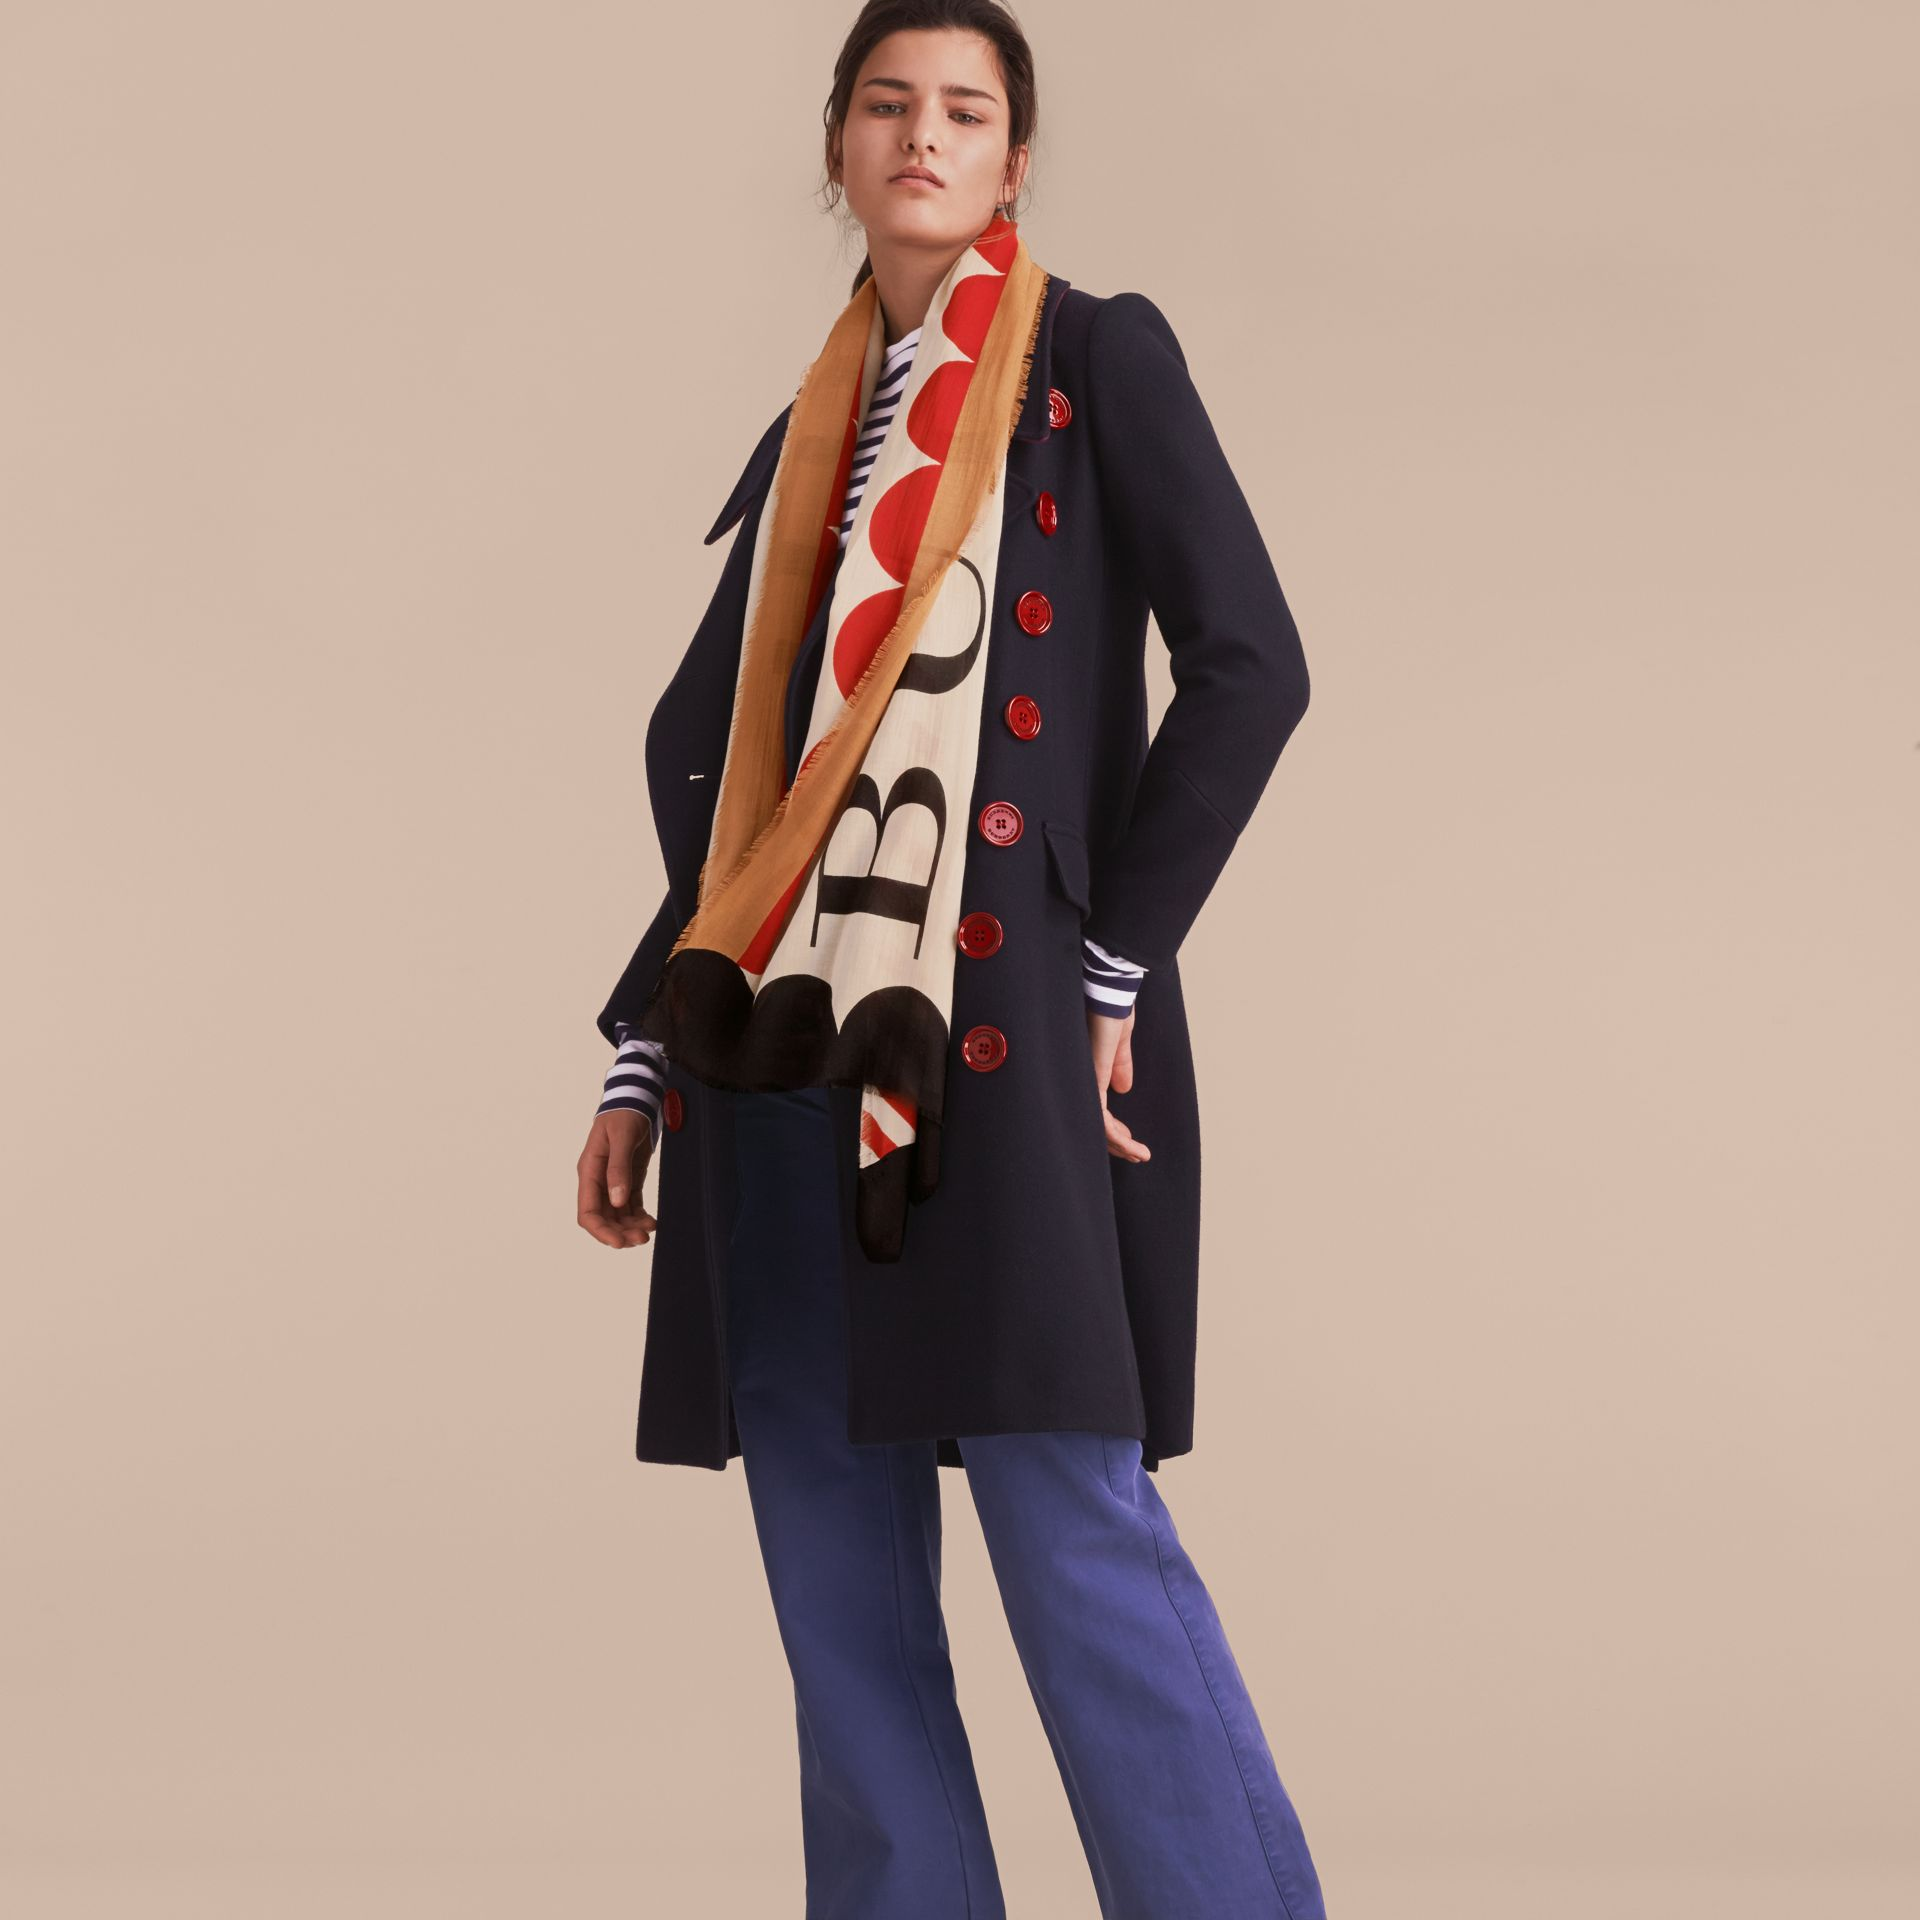 Scallop and Stripe Print Modal Wool Scarf in Stone - Women | Burberry Singapore - gallery image 3